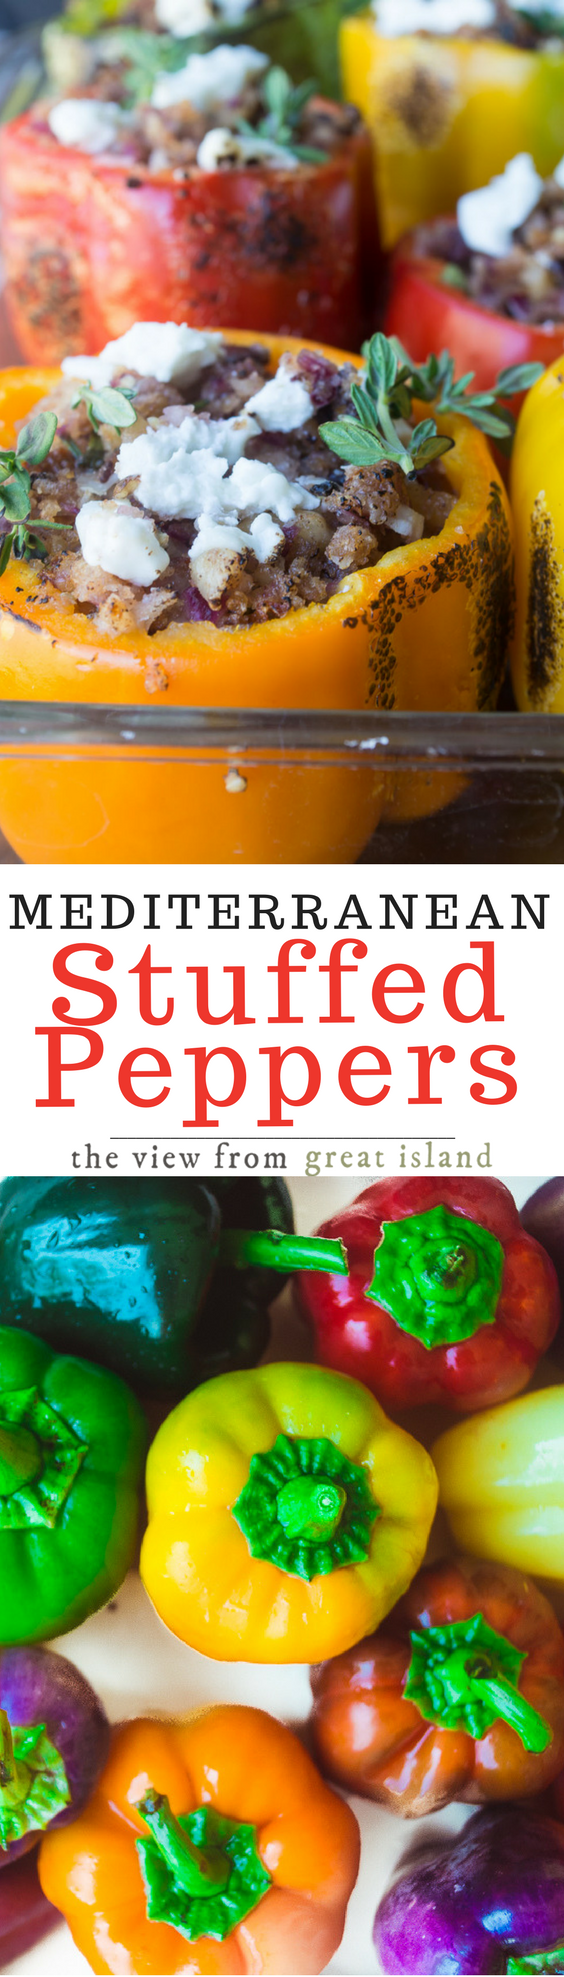 Mediterranean Stuffed Peppers is a vegetarian dish packed with the vibrant flavors of the Mediterranean ~ you won't miss the meat at all in this colorful and healthy meal! #stuffedpeppers #beststuffedpeppers #vegetarian #comfortfood #rainbow #bellpeppers Mediterraneandiet #healthystuffedpeppers #recipe #dinner #meatlessmonday